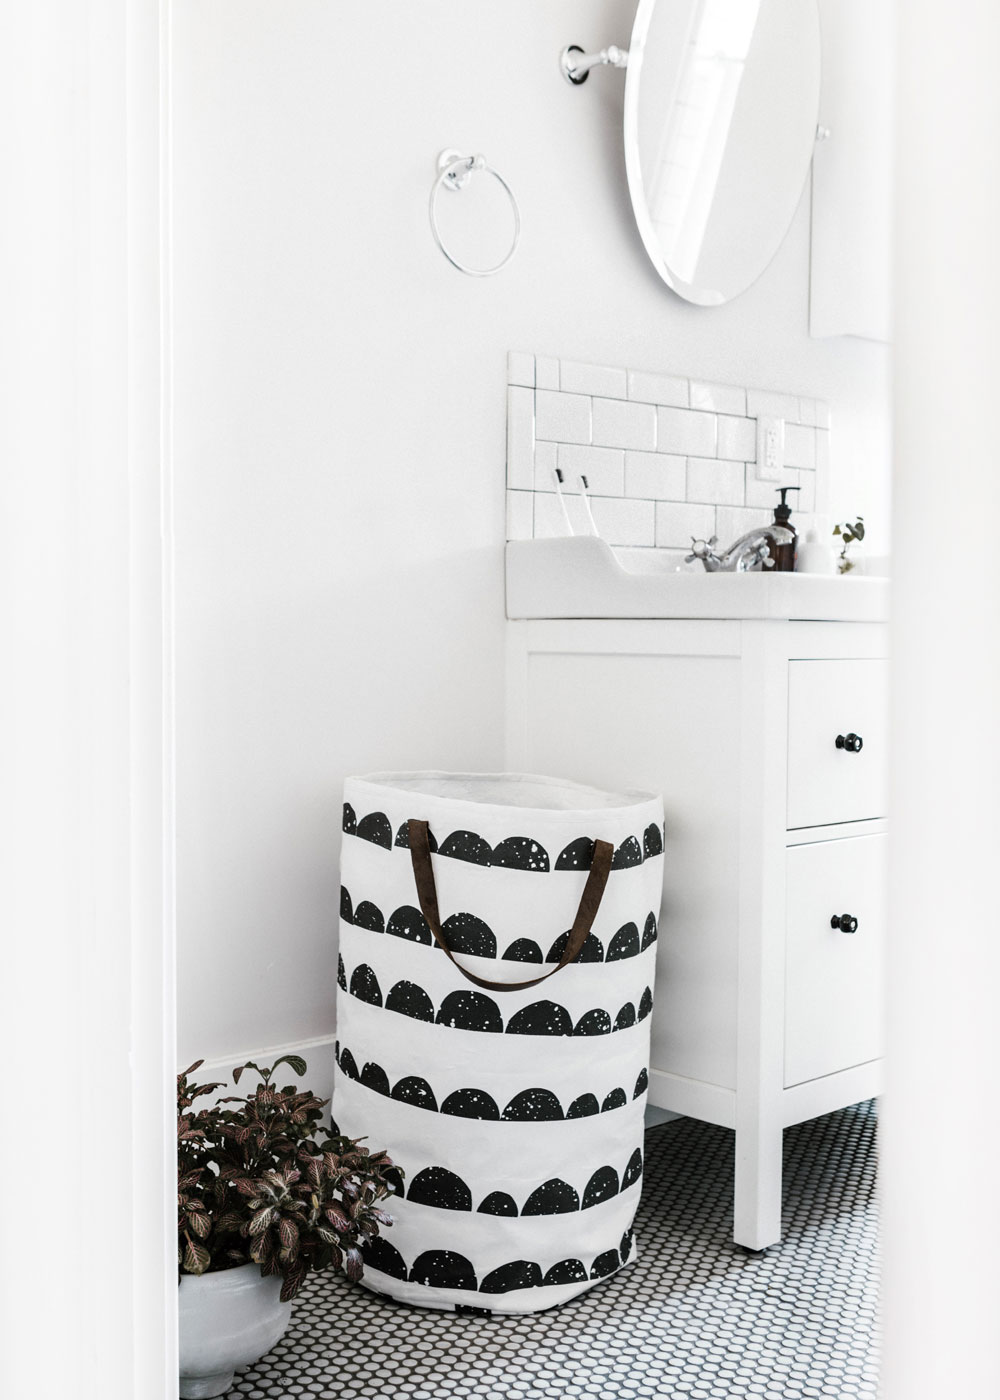 How to make a small bathroom appear bigger apartment number 4 - Seven tips to save space in a small bathroom ...